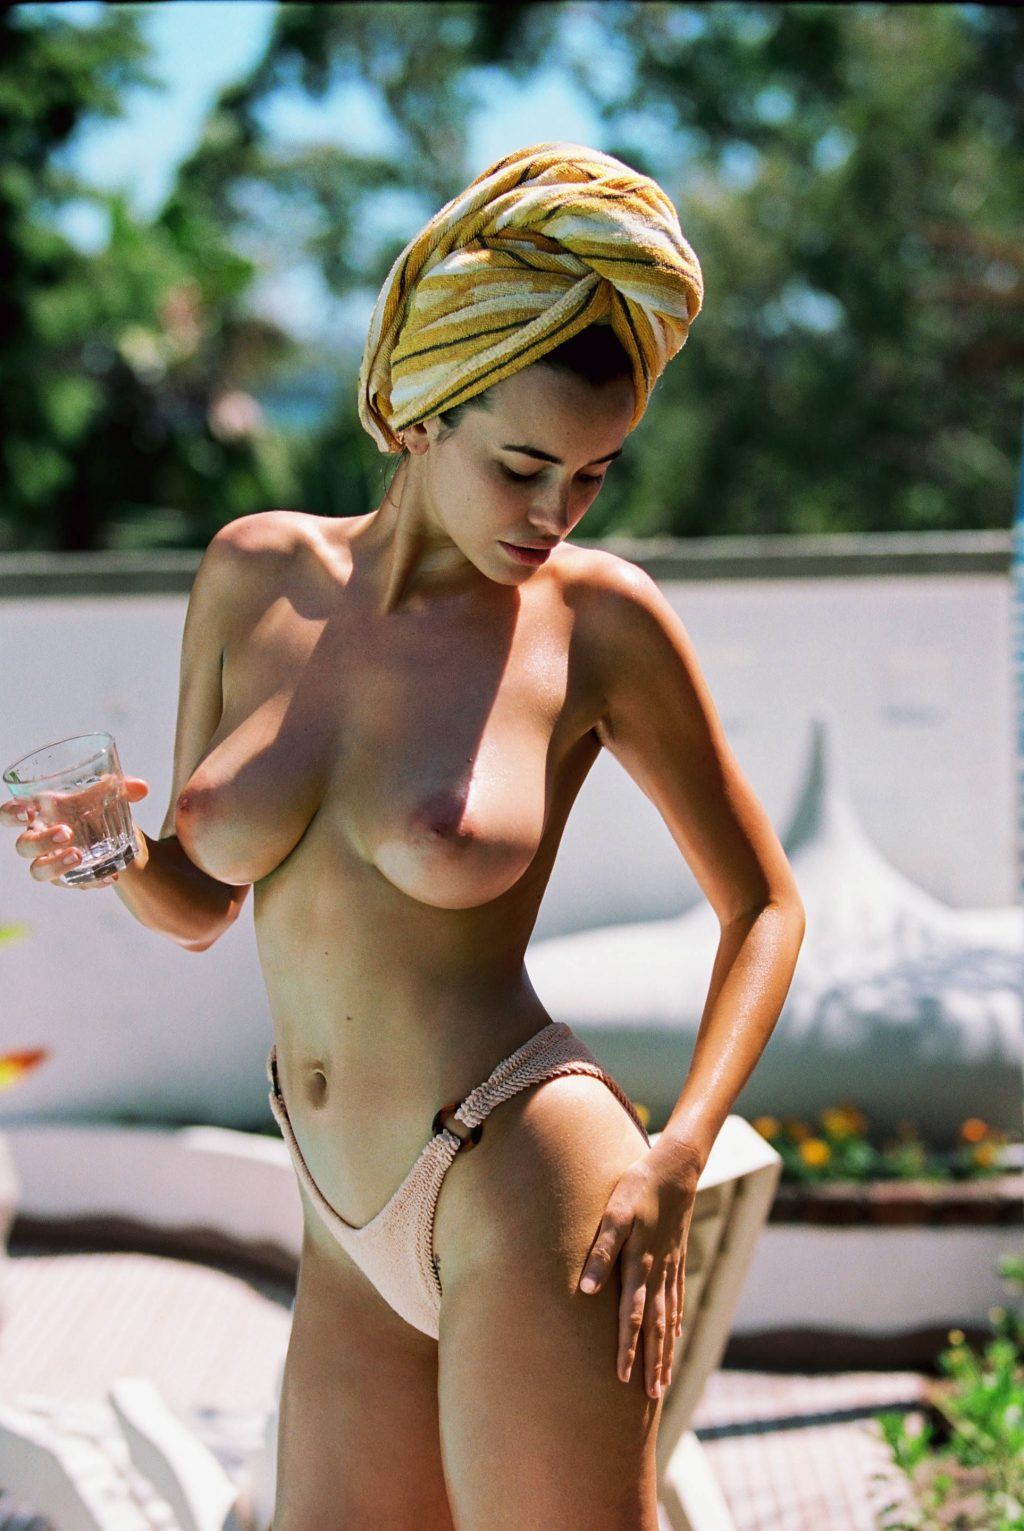 Discussion on this topic: Juliana balestin, sarah-hagan-topless/